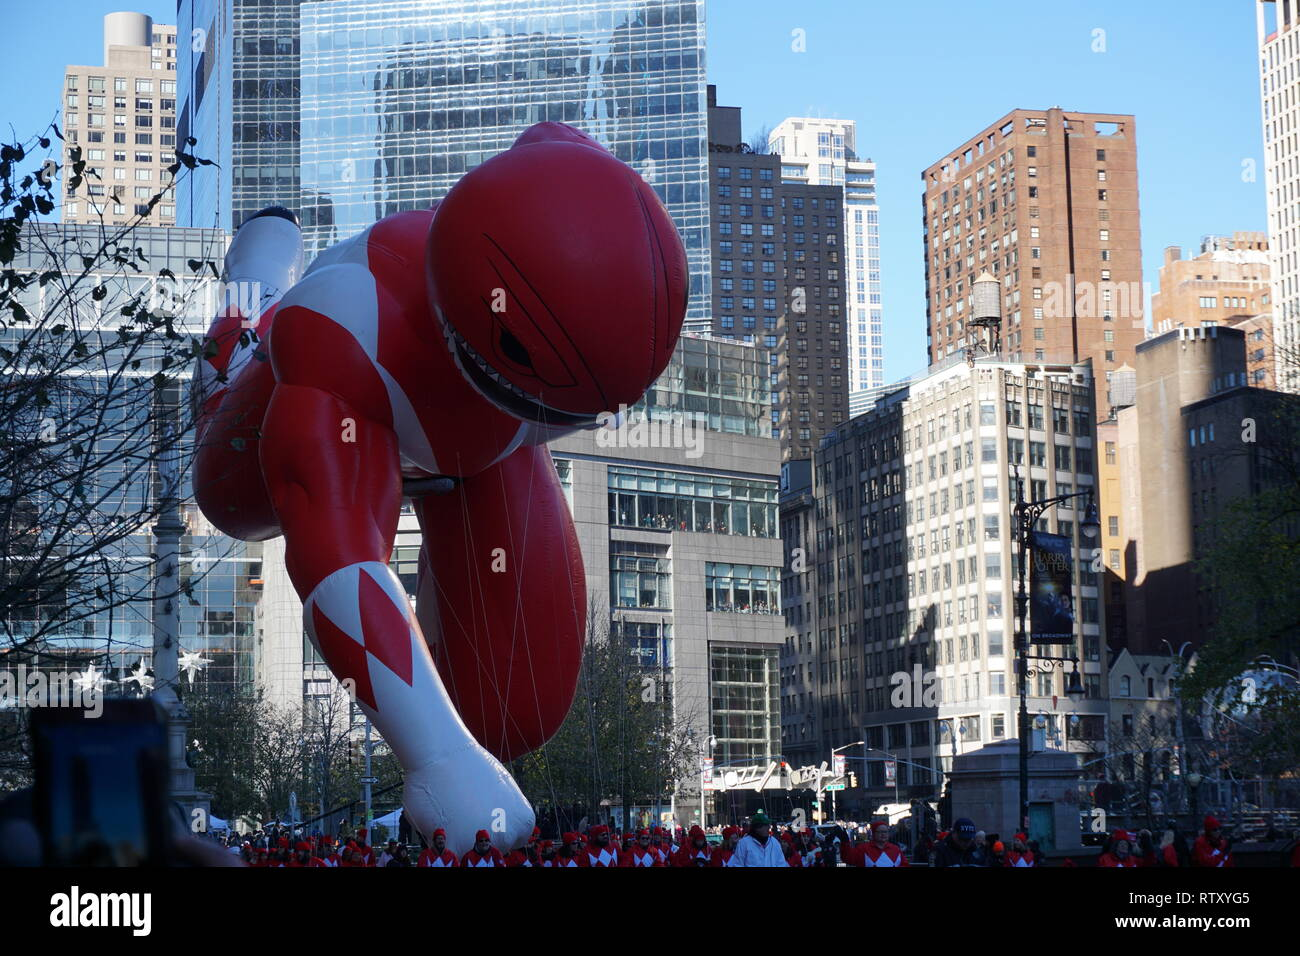 New York, USA - November 2018: jährliche Macys Thanksgiving Day Parade in New York City on November Power Ranger baloon Stockbild